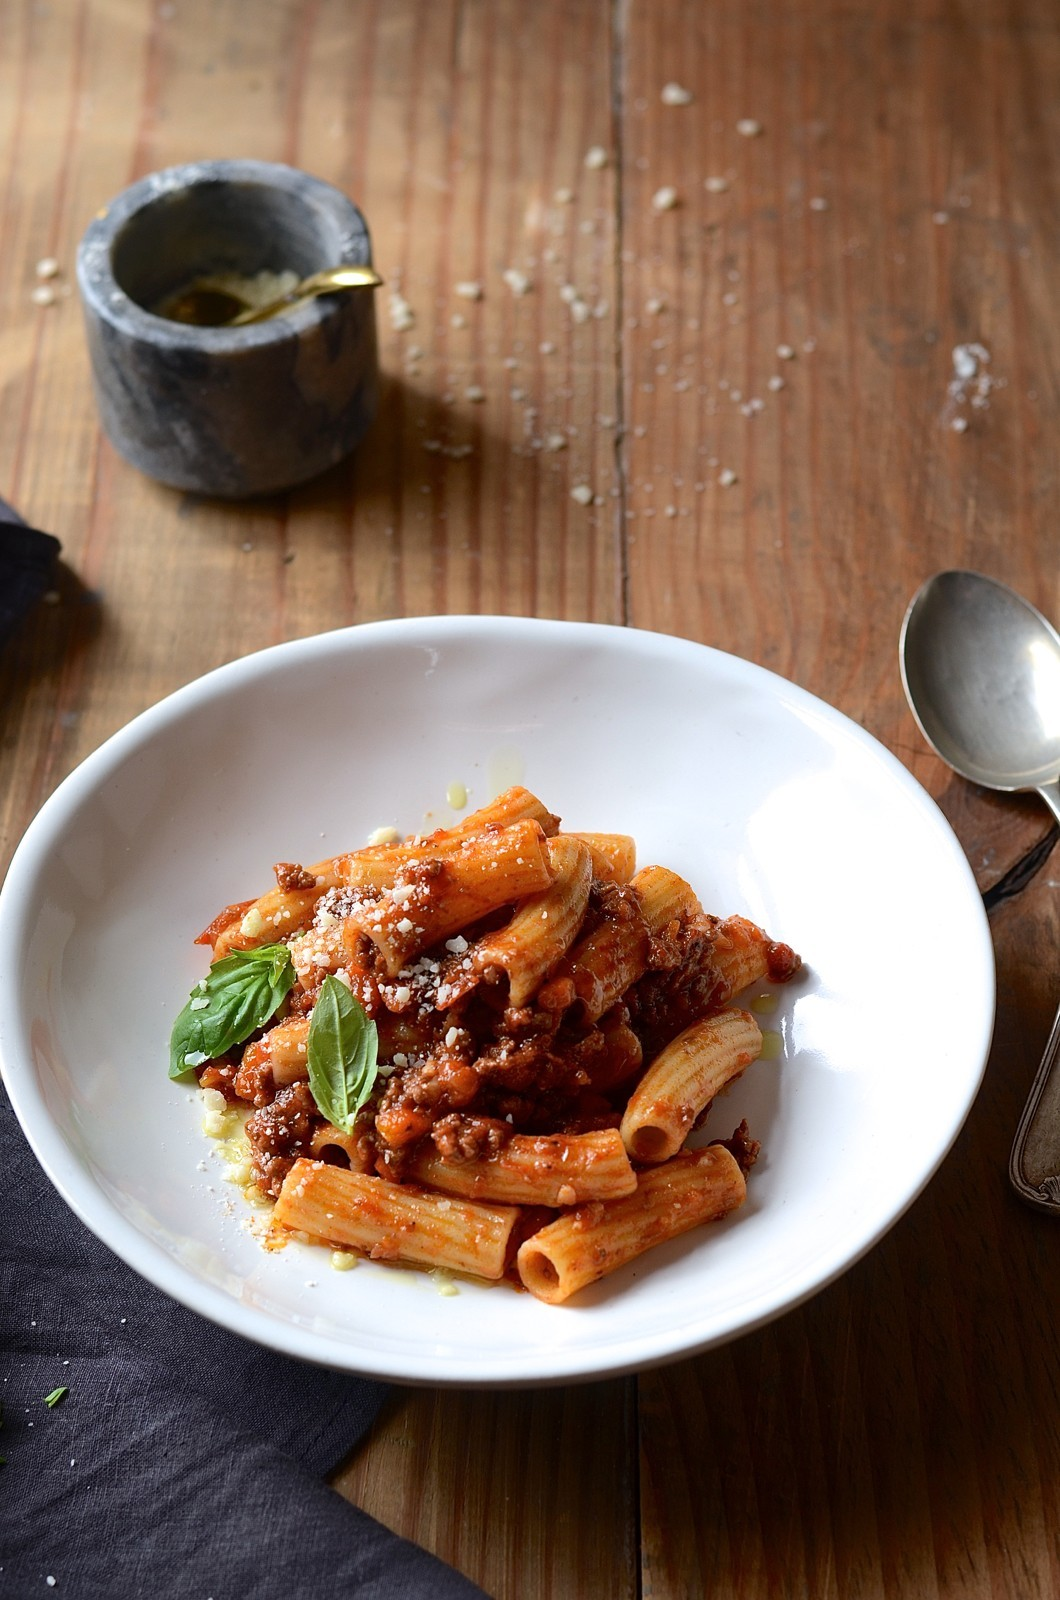 Pasta | Bibby's Kitchen @ 36 | A food blog sharing recipes, stories and travel